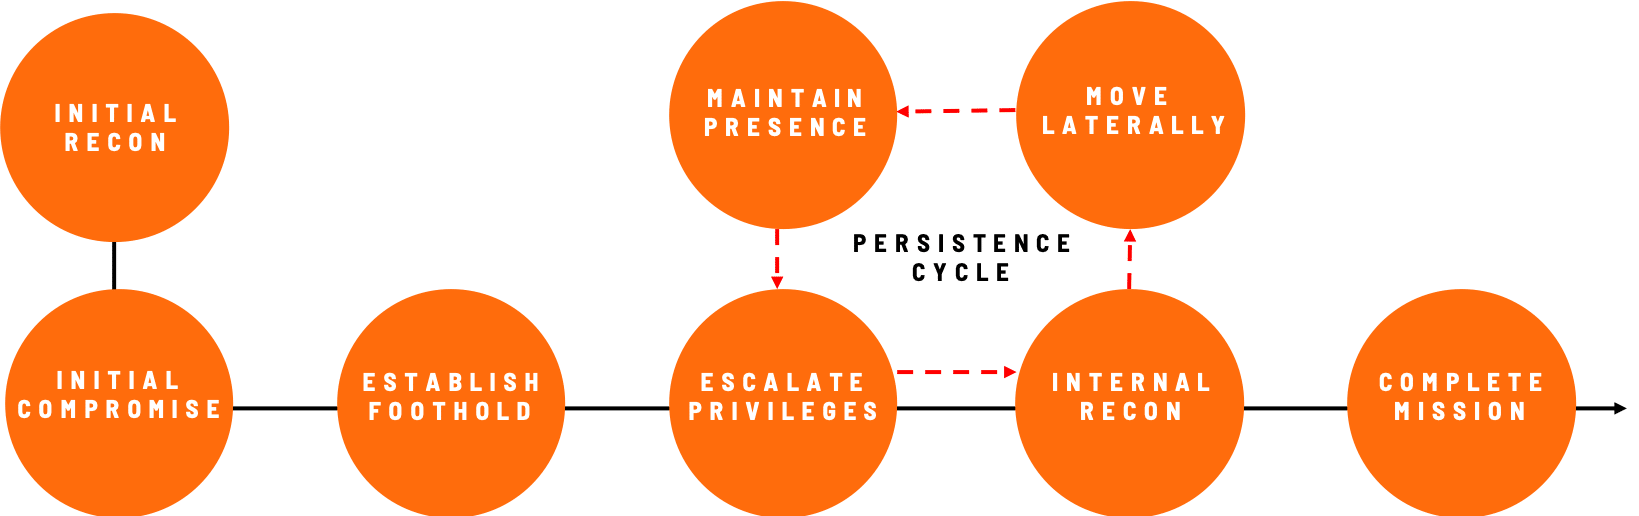 Persistence Cycle